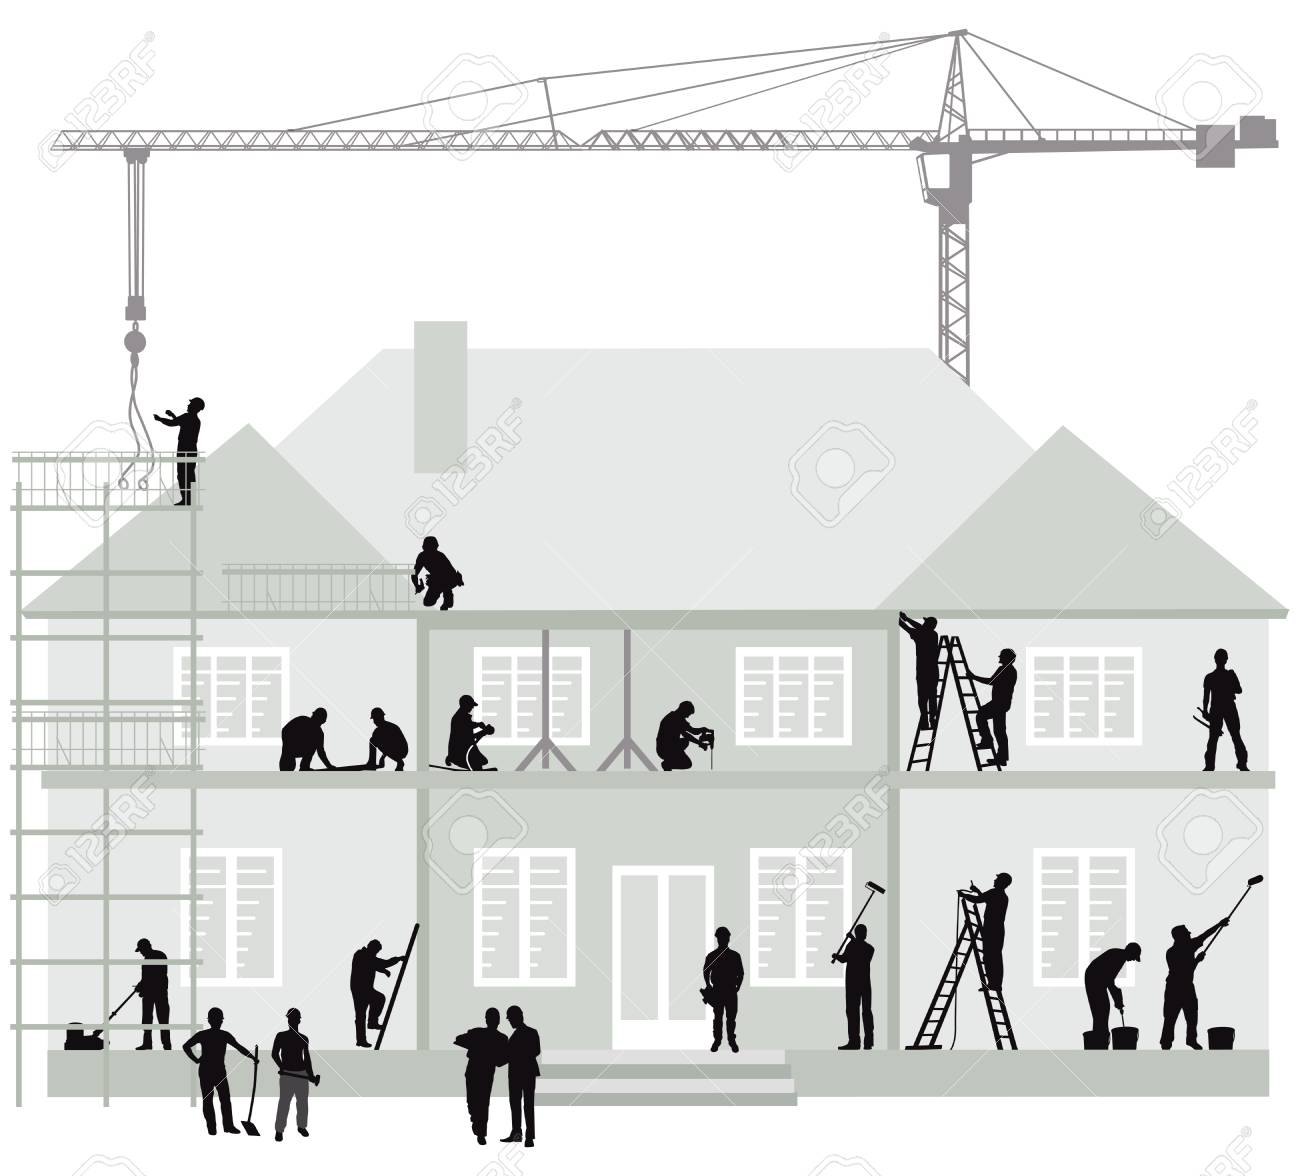 Construction site with construction workers, excavator and crane - 125503649